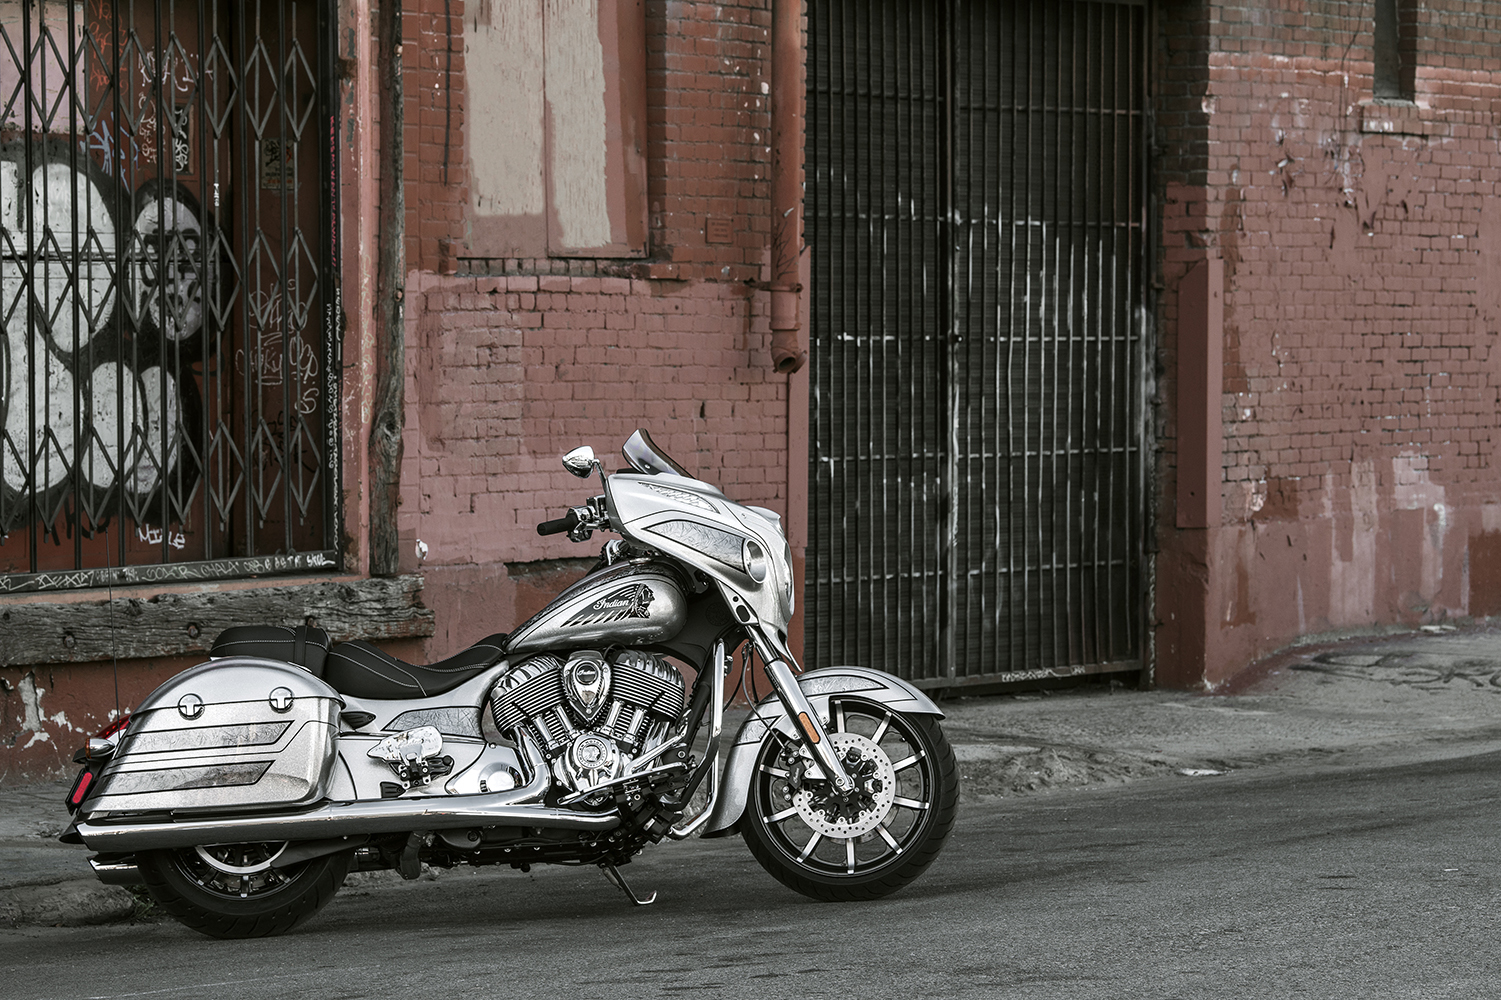 Indian Motorcycles to come up with limited edition Black Hills Silver bike